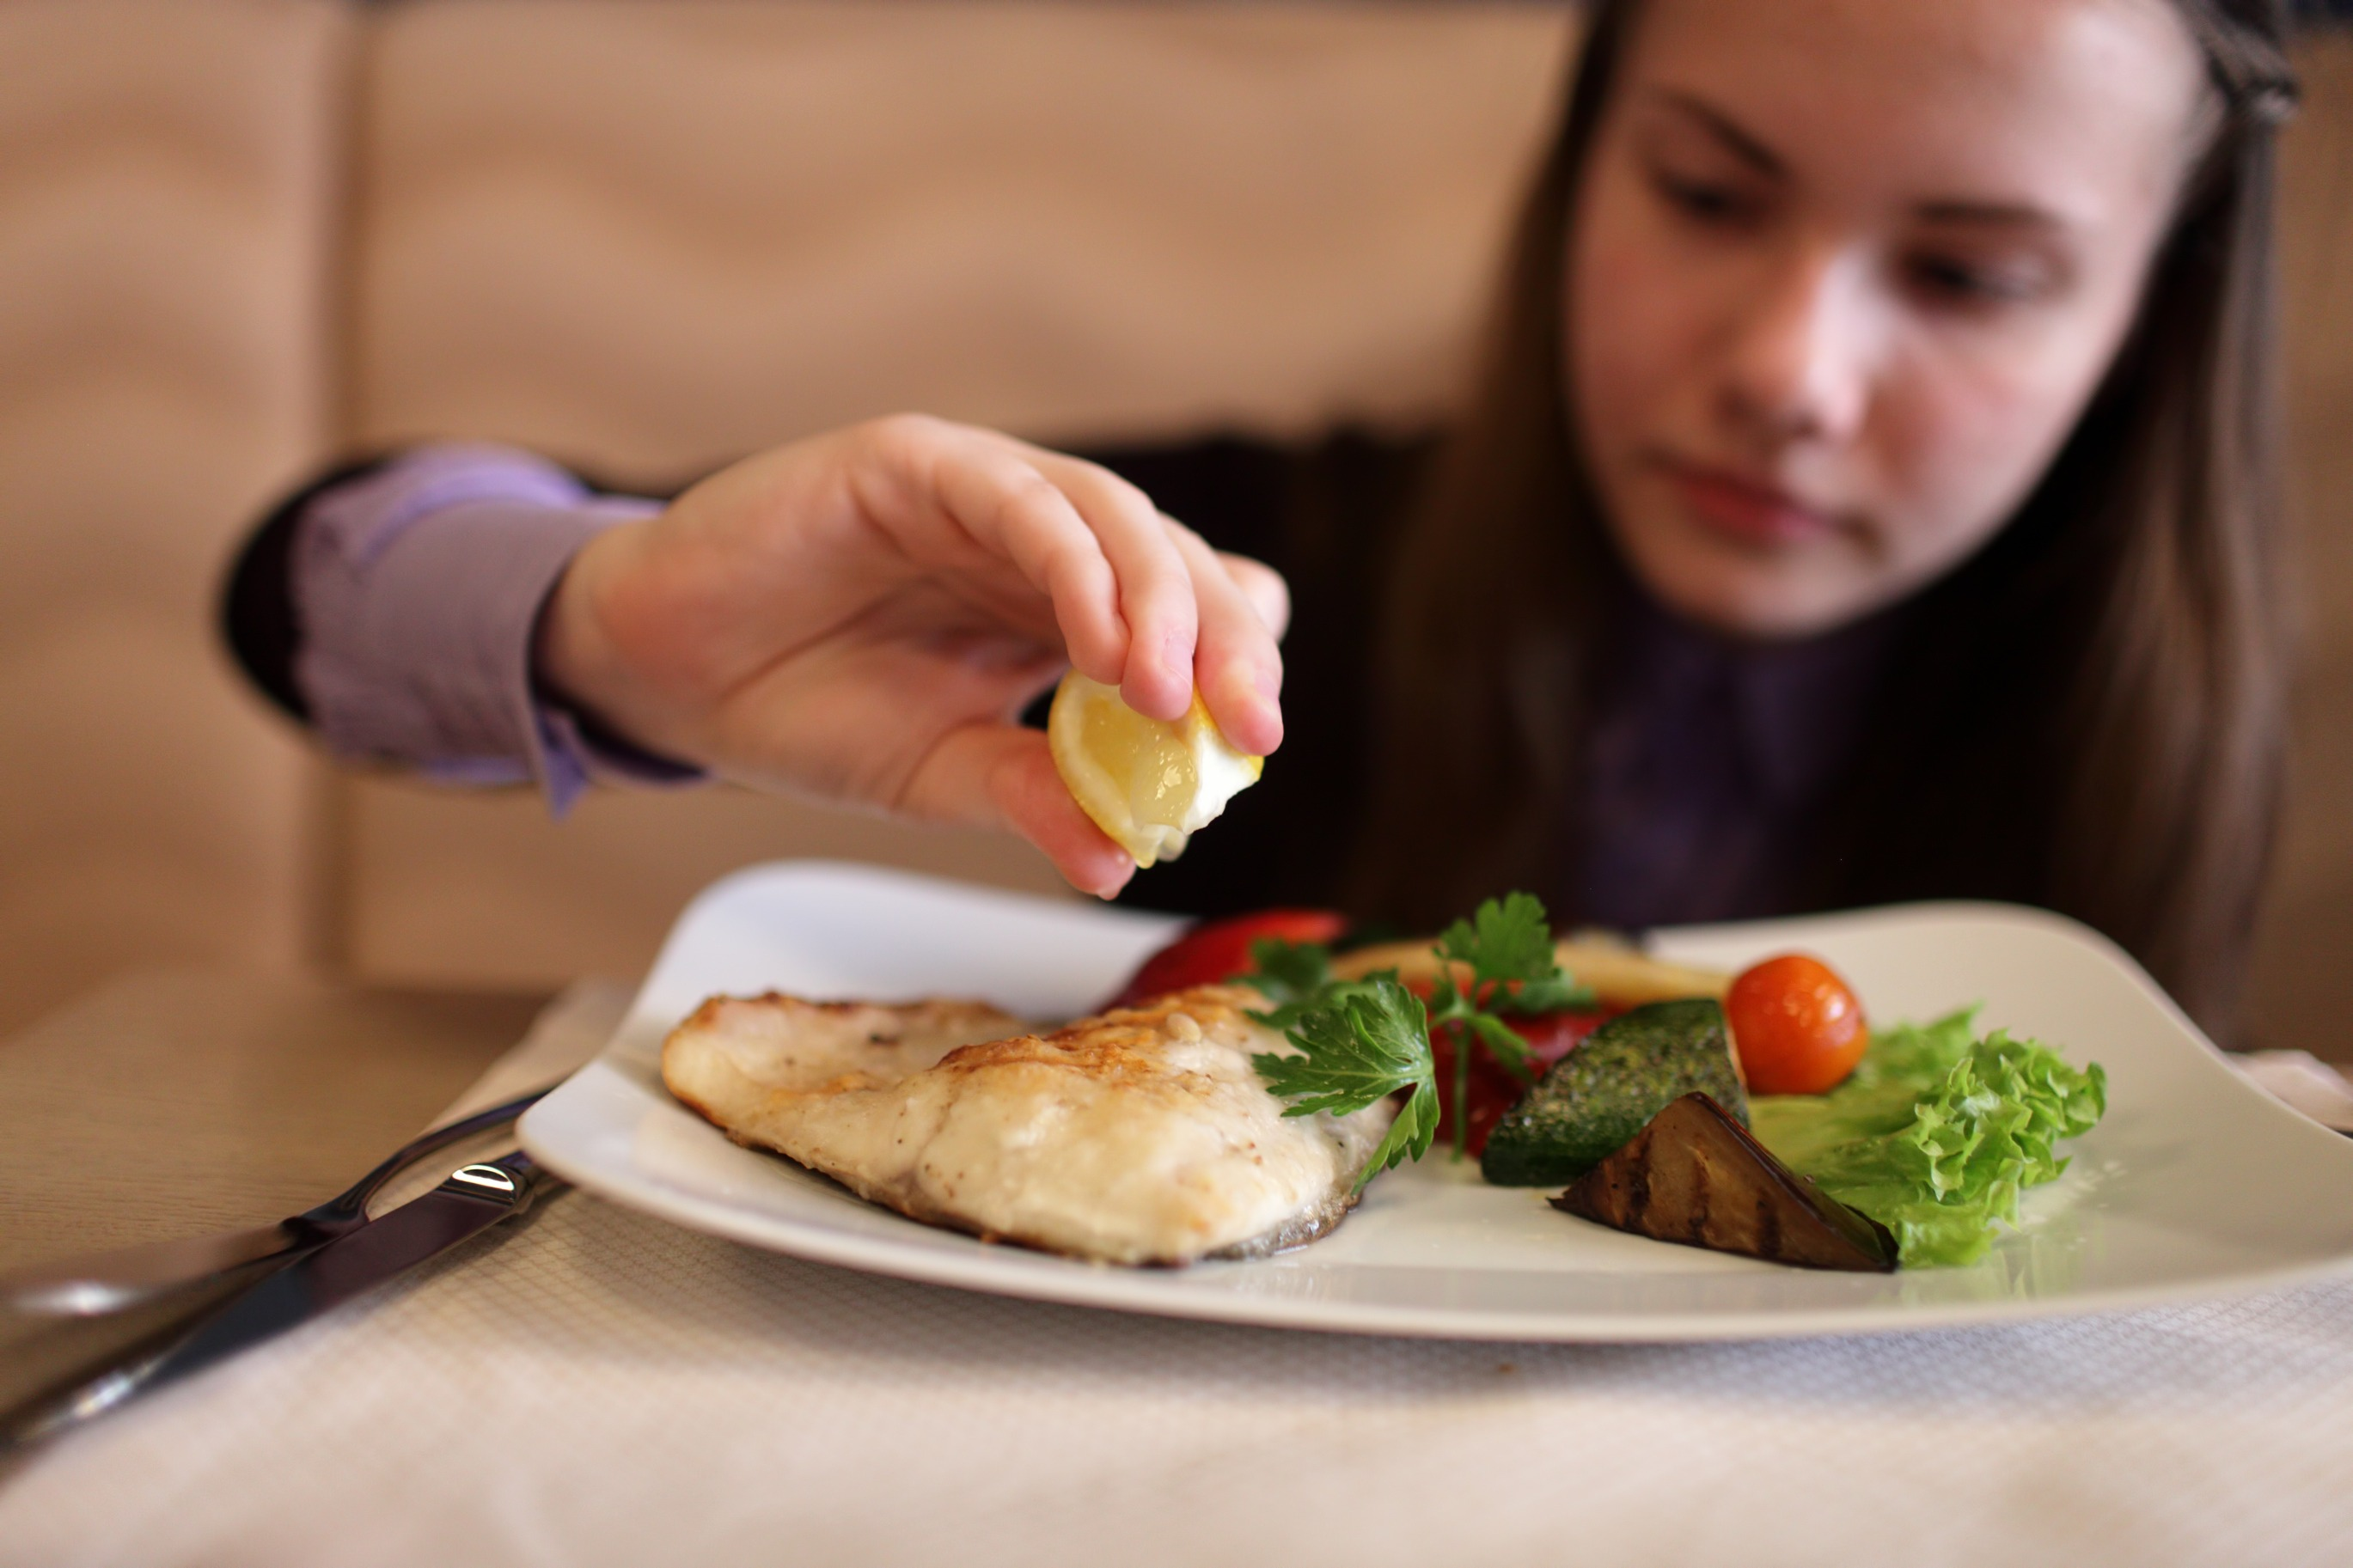 The Teen Has Lunch In A Restaurant